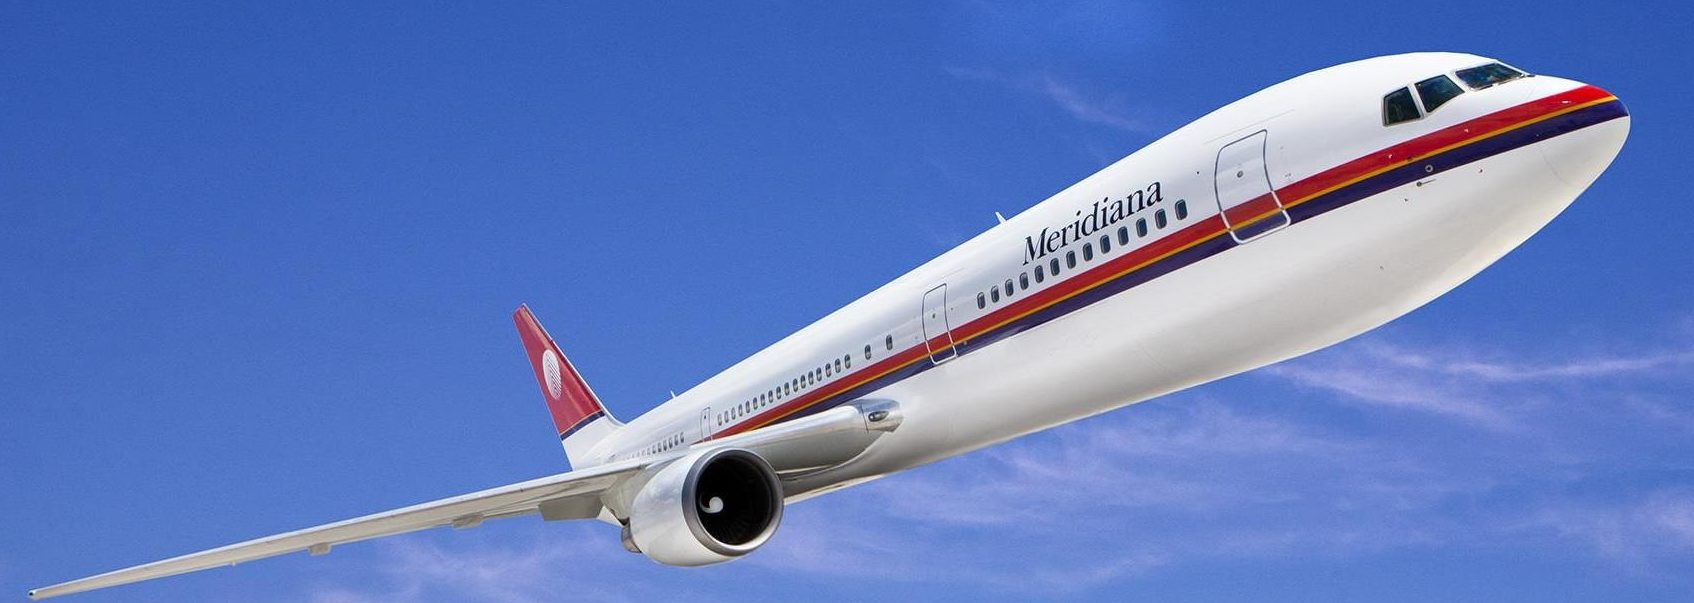 meridiana check in italiano